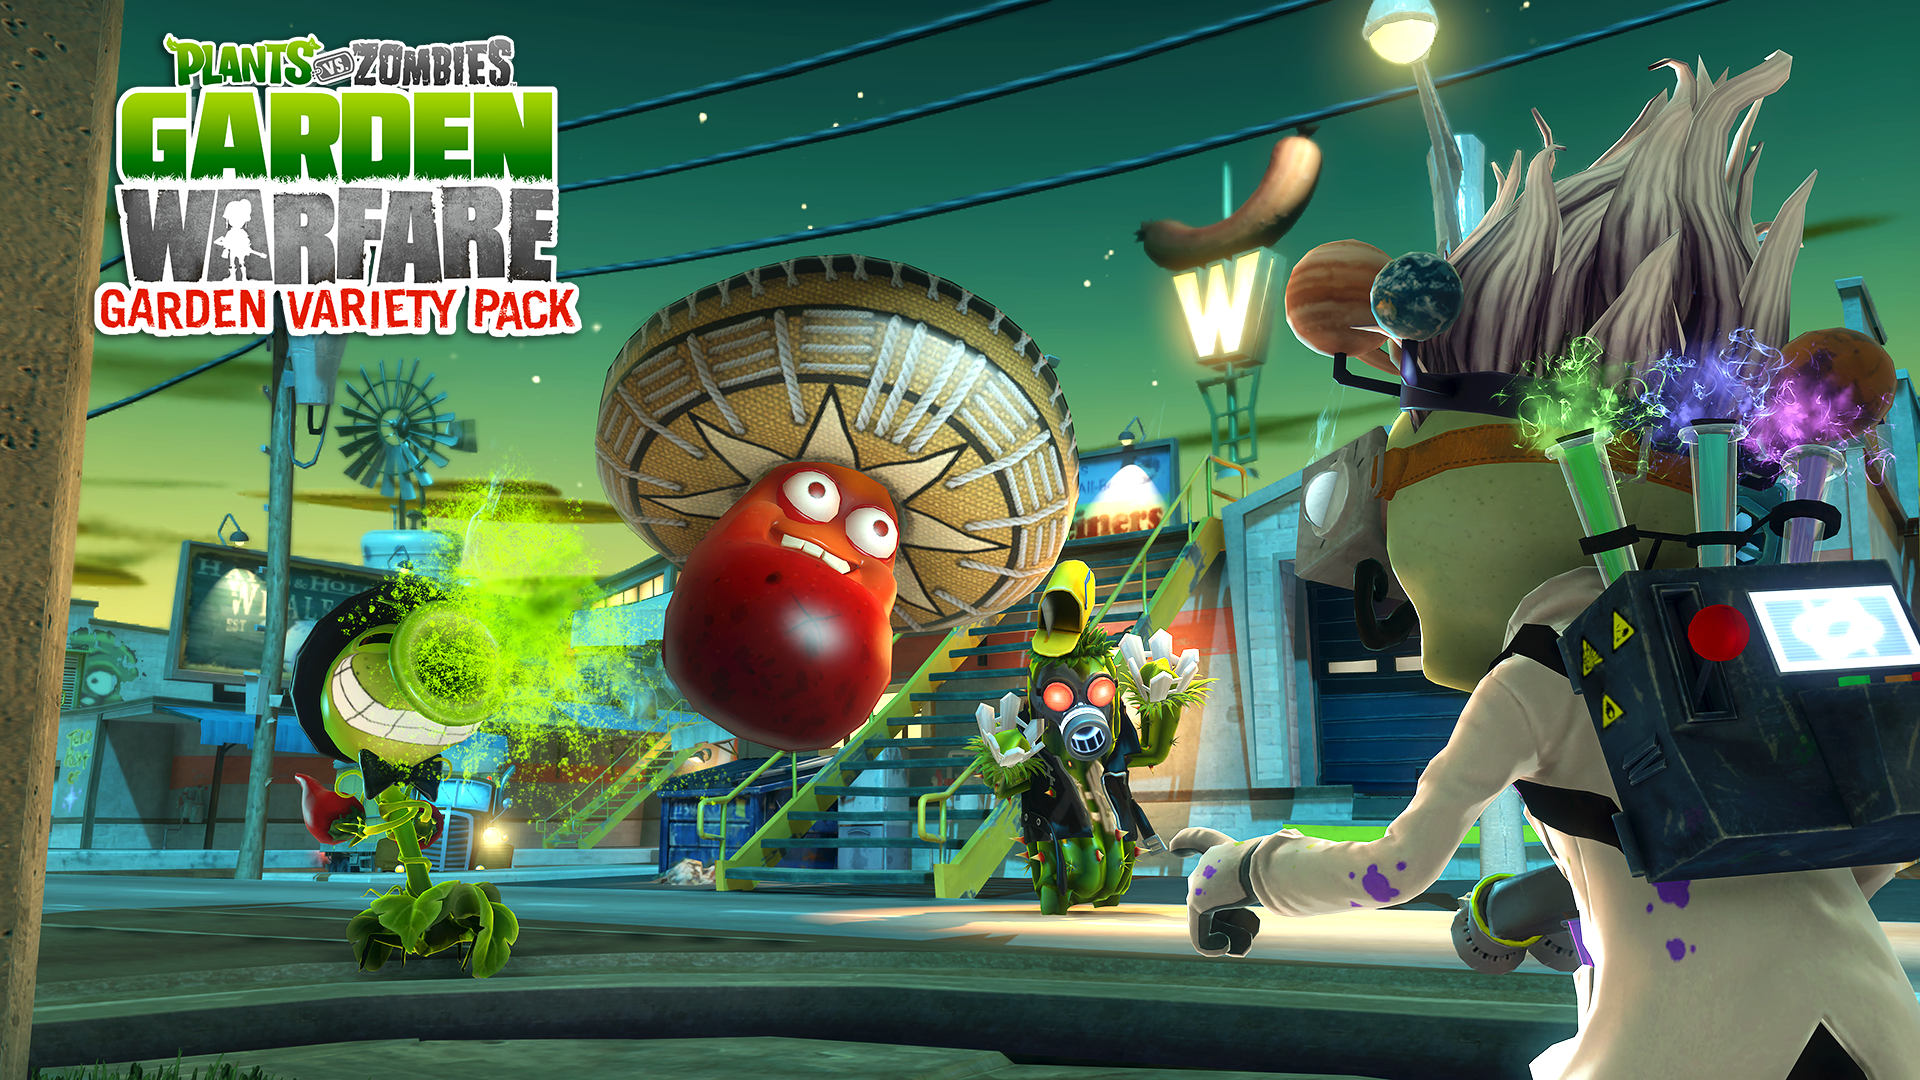 Plants Vs Zombies Garden Warfare Full Hd Fondo De Pantalla And Fondo De Escritorio